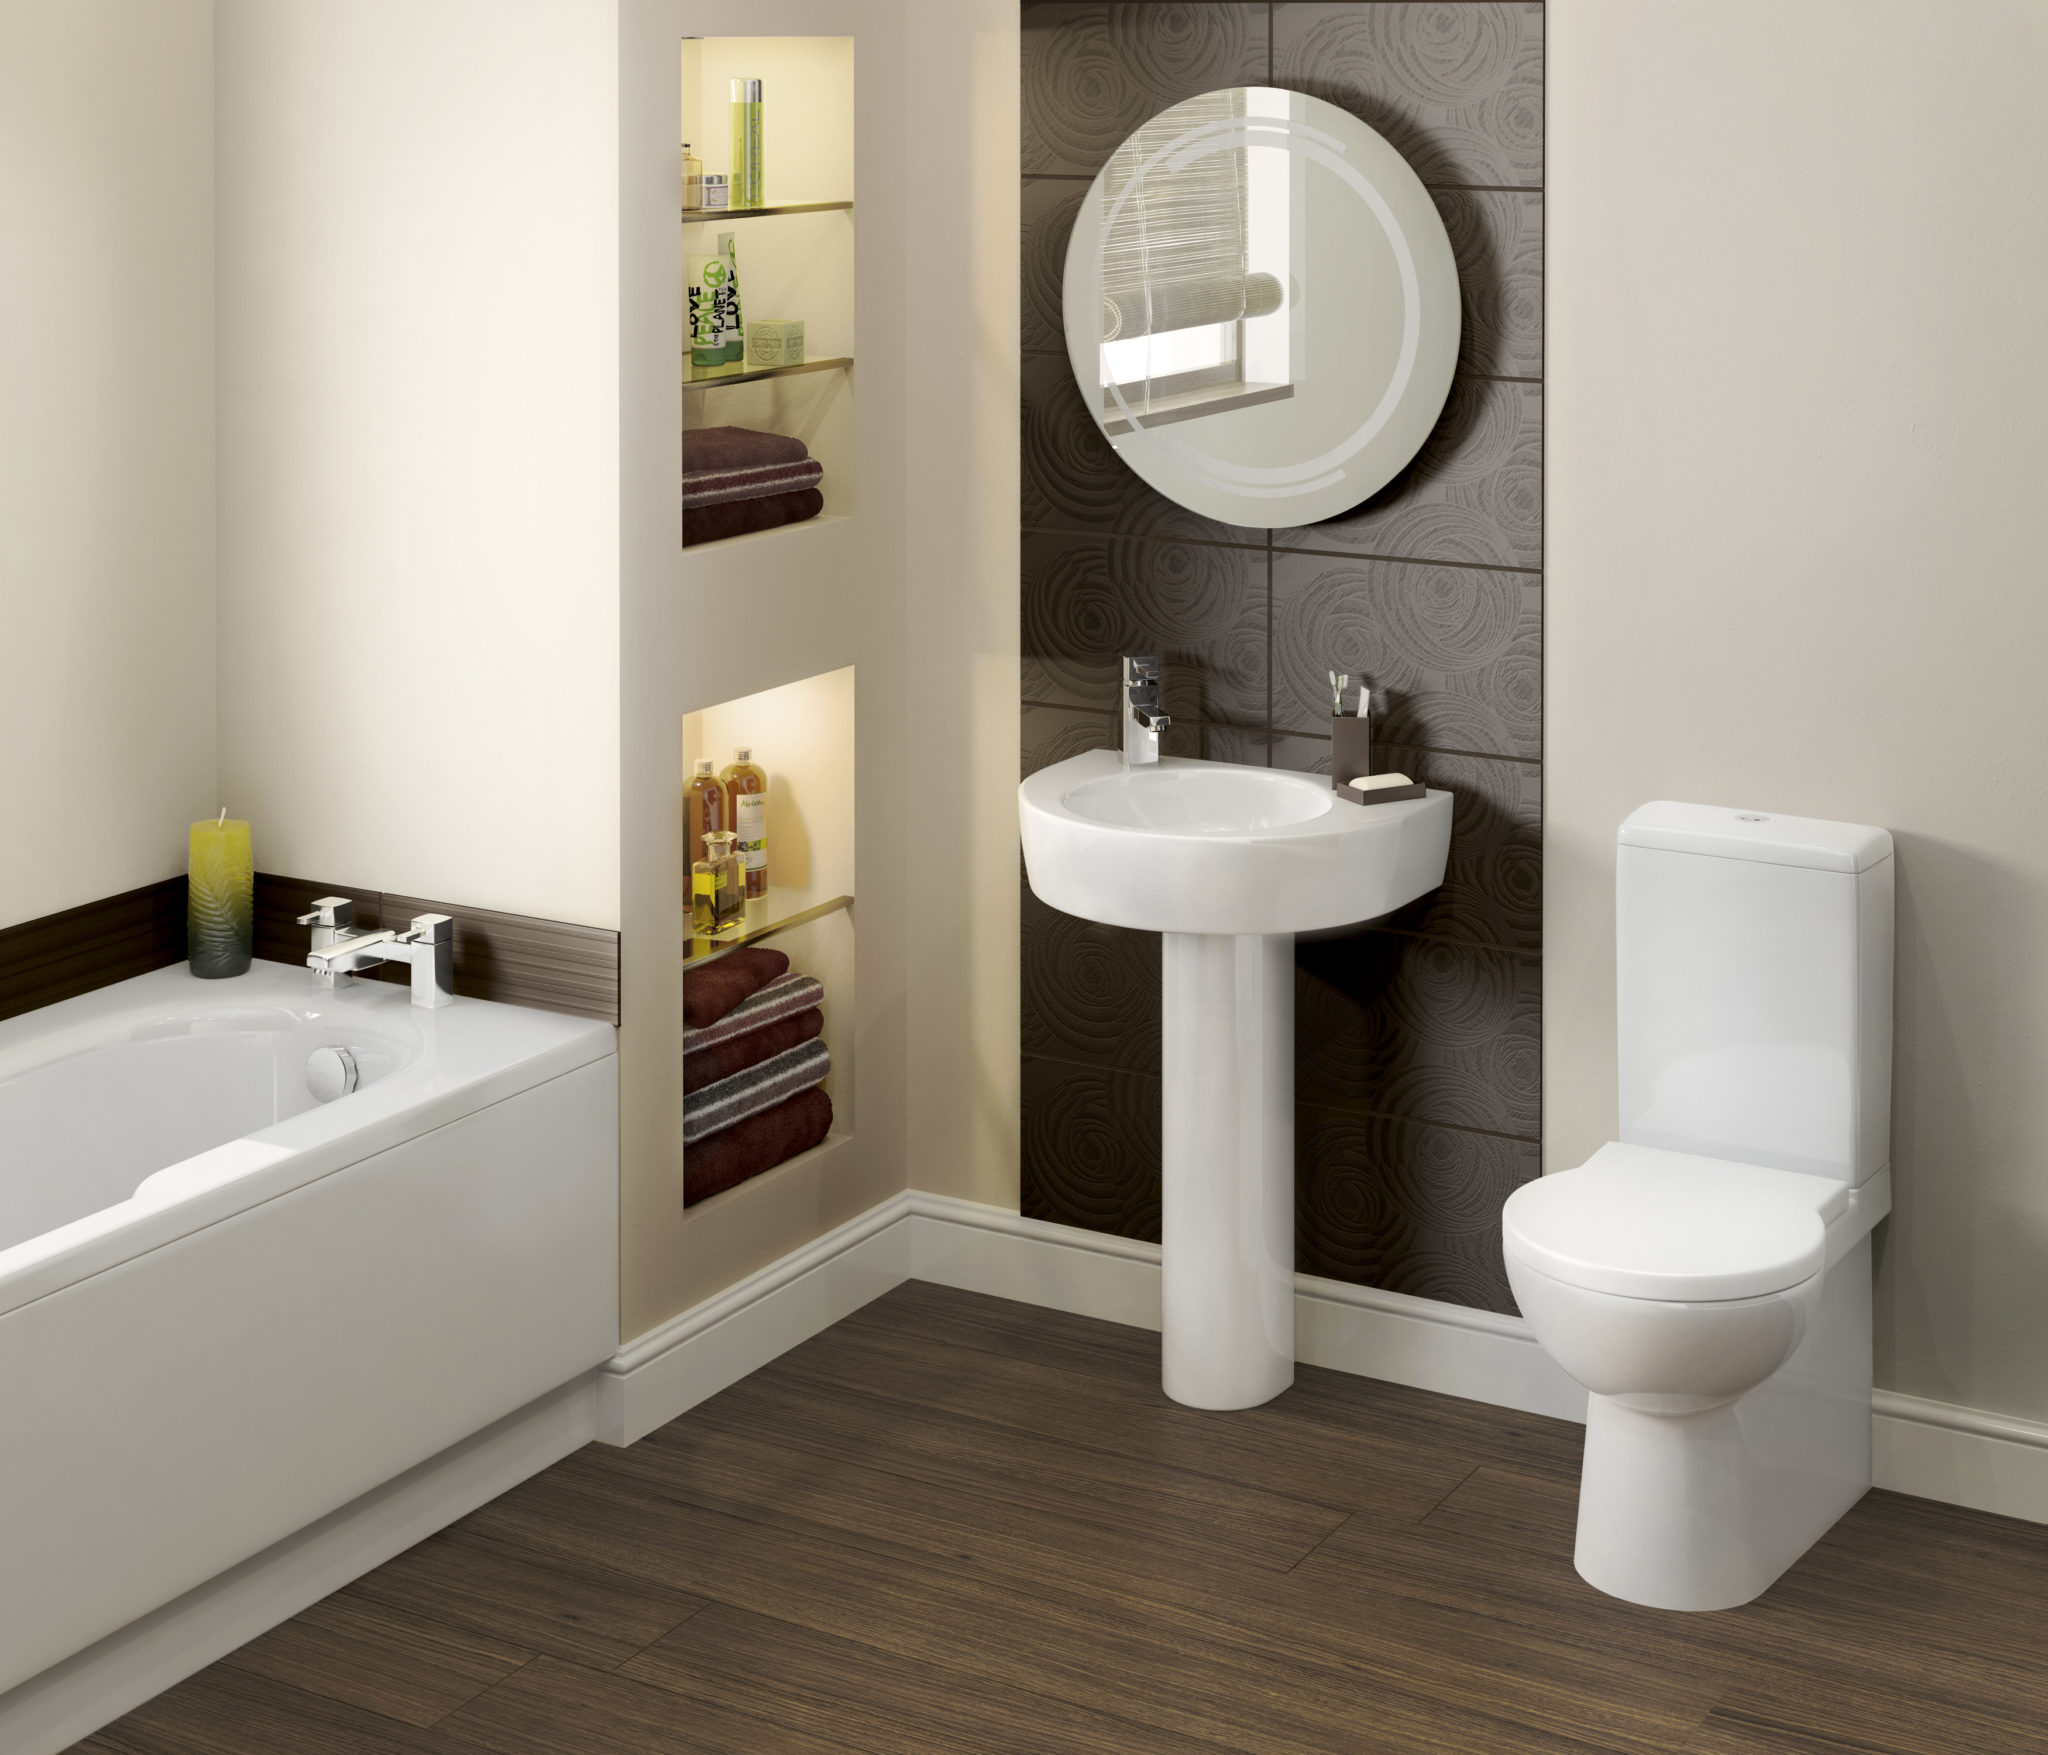 Redesign My Bathroom Of Choosing A Plumbing Contractor For Your Bathroom Remodel